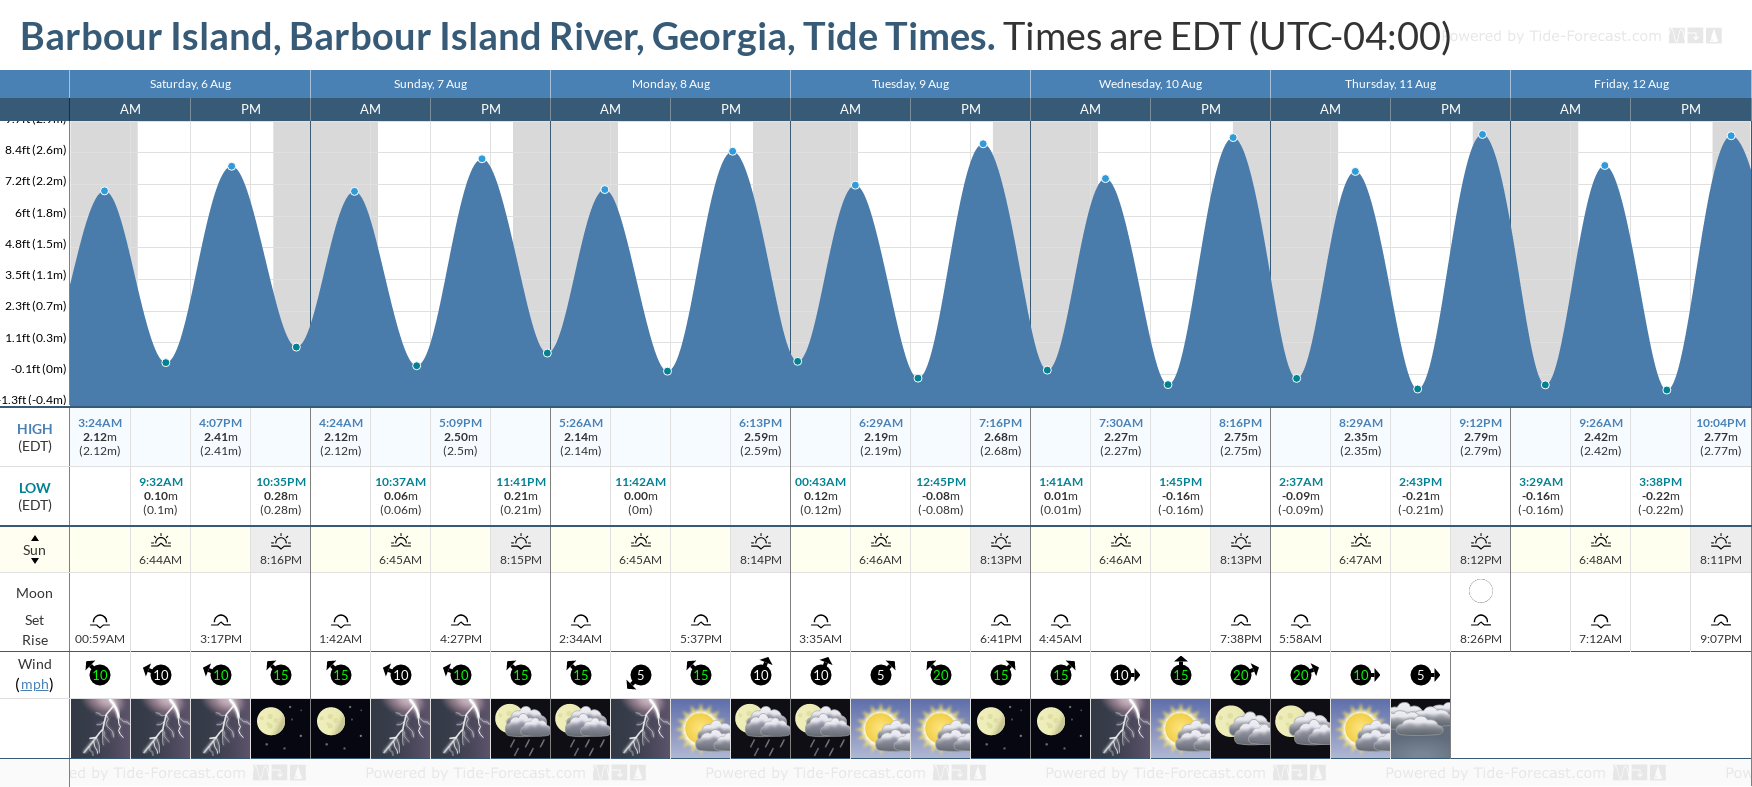 Barbour Island, Barbour Island River, Georgia Tide Chart including high and low tide tide times for the next 7 days